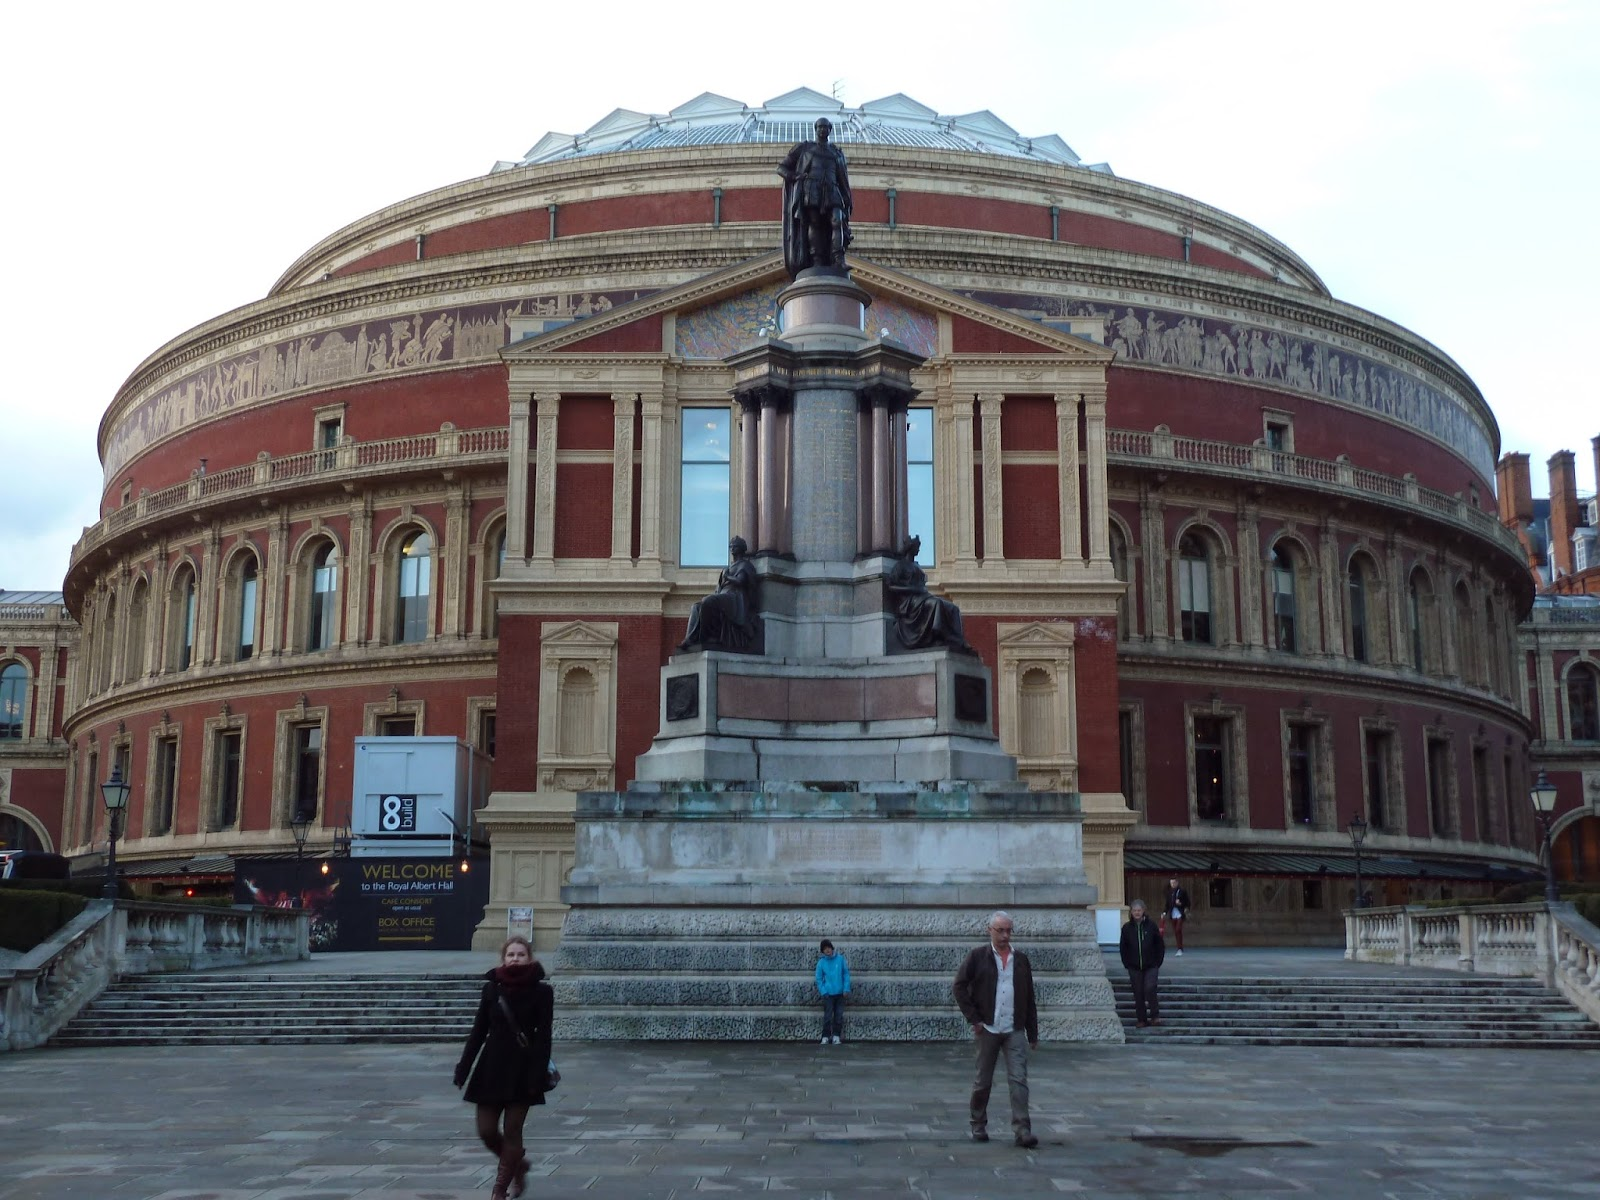 Form 7 concert halls theatres for Door 4 royal albert hall